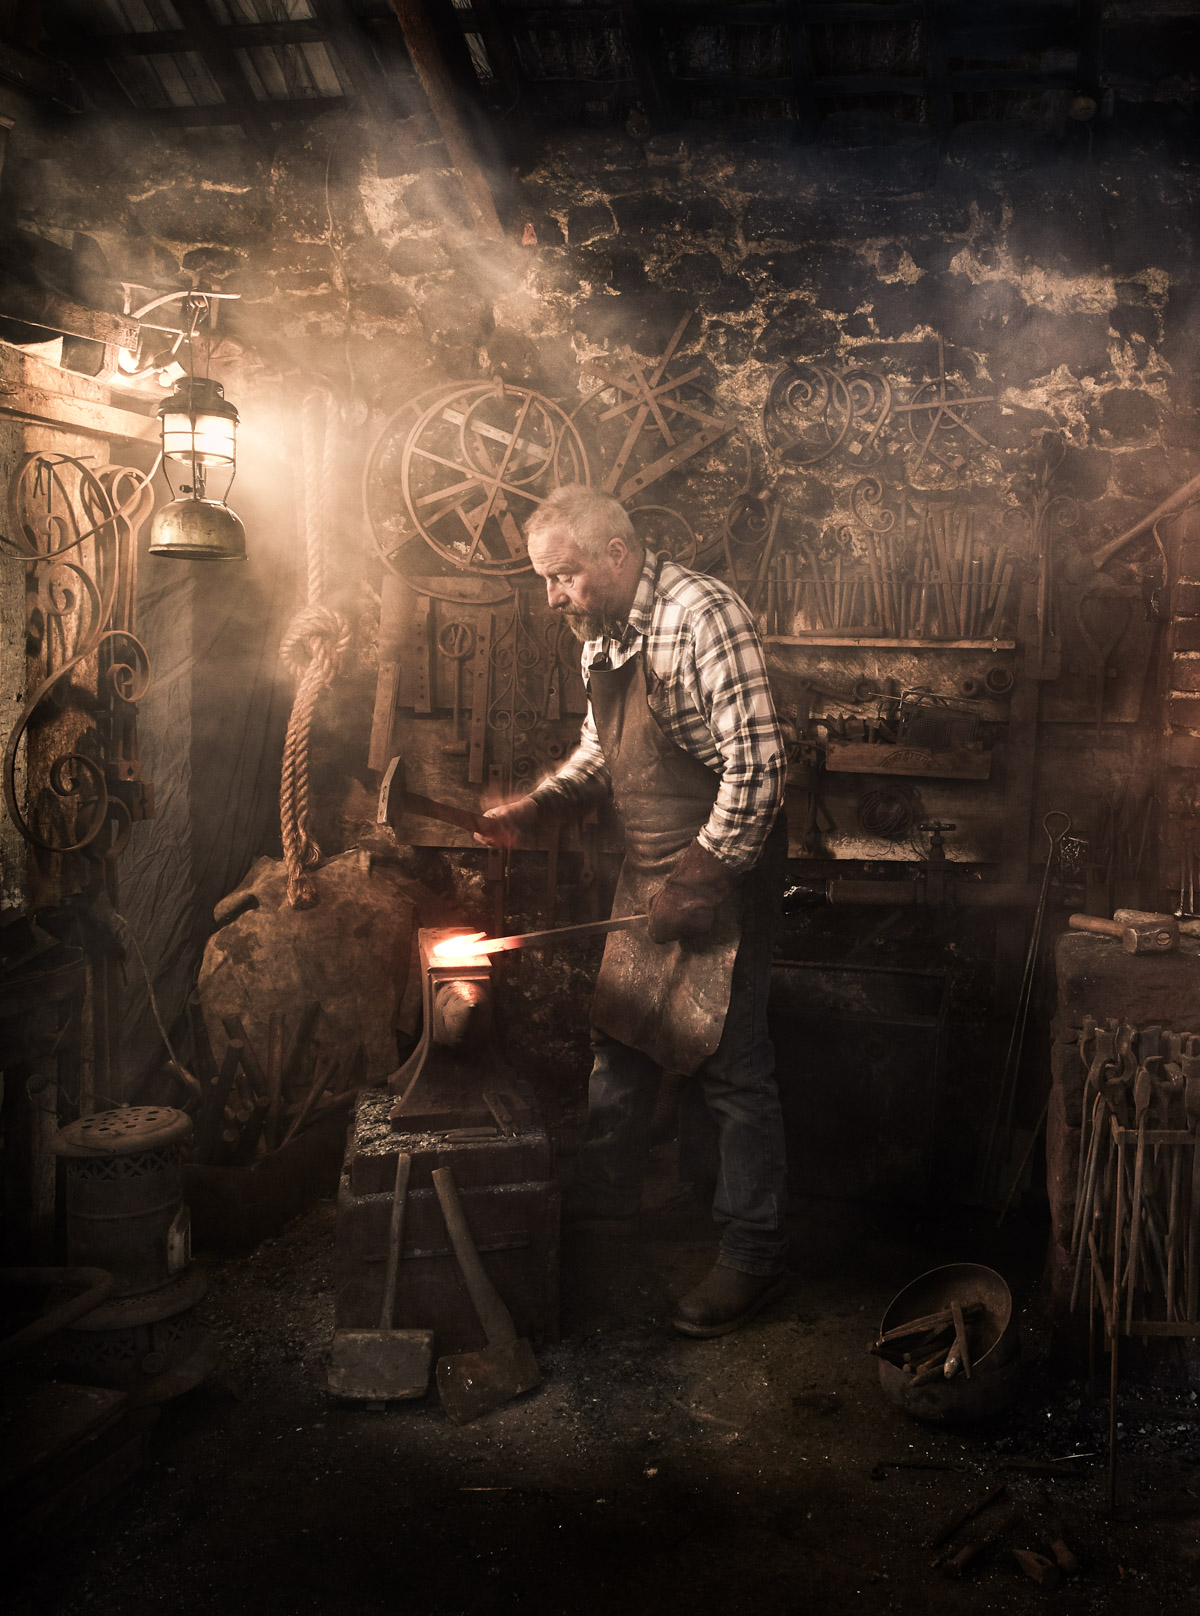 Greg Abel / Blacksmith / Moretonhampstead - One of just a handful of blacksmiths left on Dartmoor, Greg Abel works in a 150-year-old stone forge, where vintage farm and farriers' tools, made by previous smithies, still hang from the rafters. Greg uses traditional coal in the original hearth rather than gas, which is now more commonly used, with hammer and anvil still his main tools. You can drop in to see Greg at work, or book in for a course and learn how to make a fire poker, toasting fork, letter opener, coat hook or barbecue butler